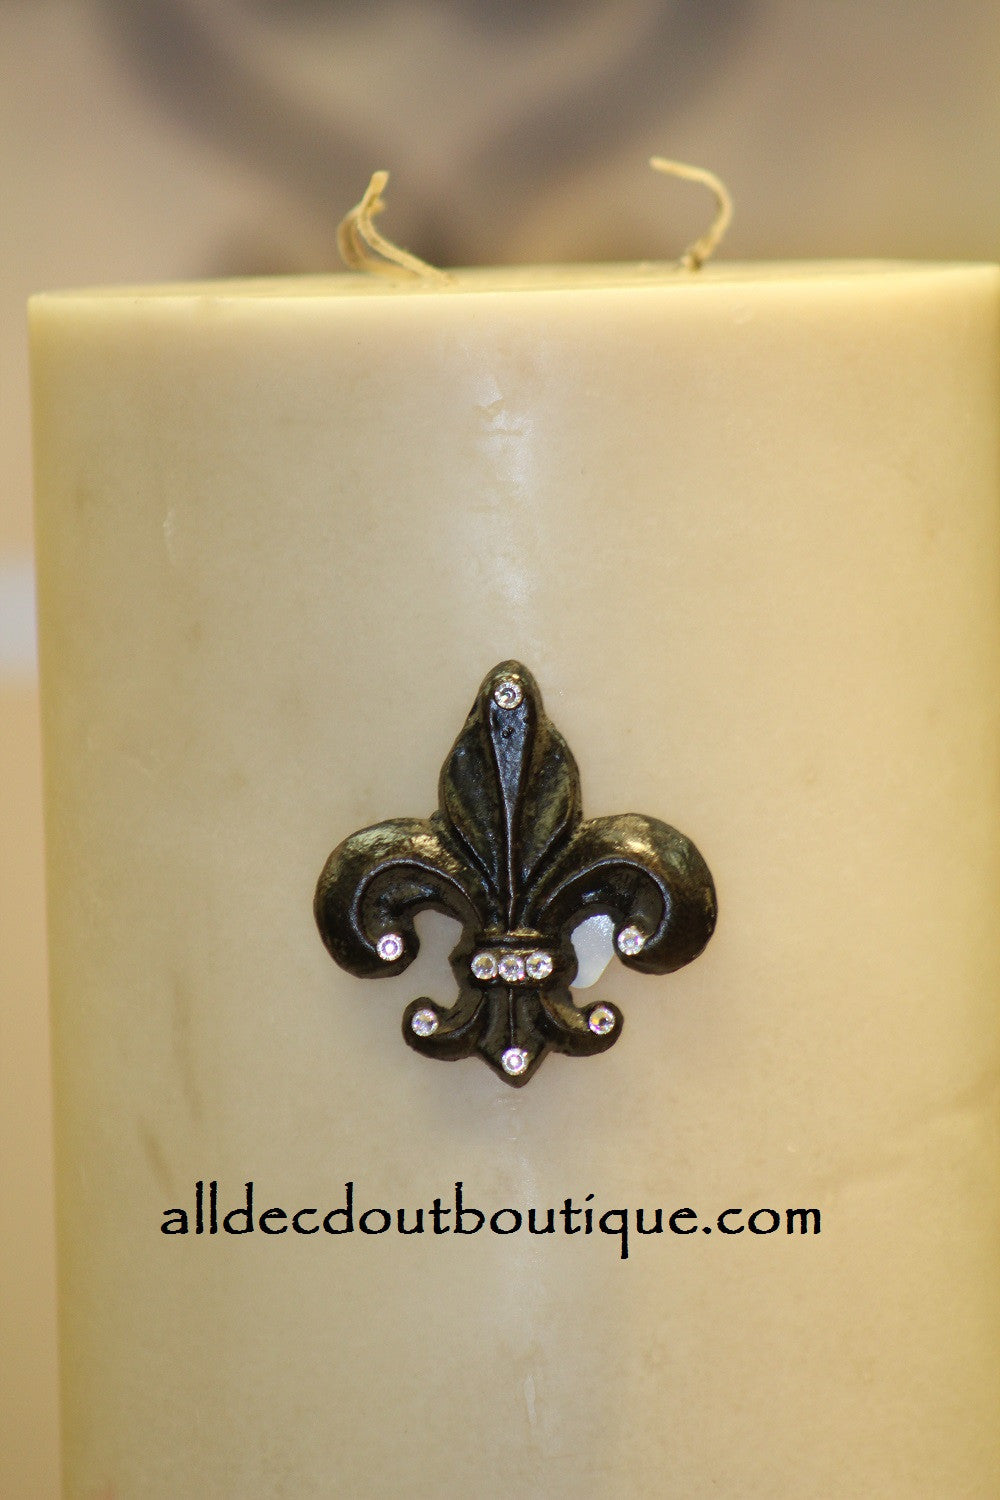 DECORATIVE CANDLE PIN EMBELLISHED Clear Crystals Small Fleur De Lis